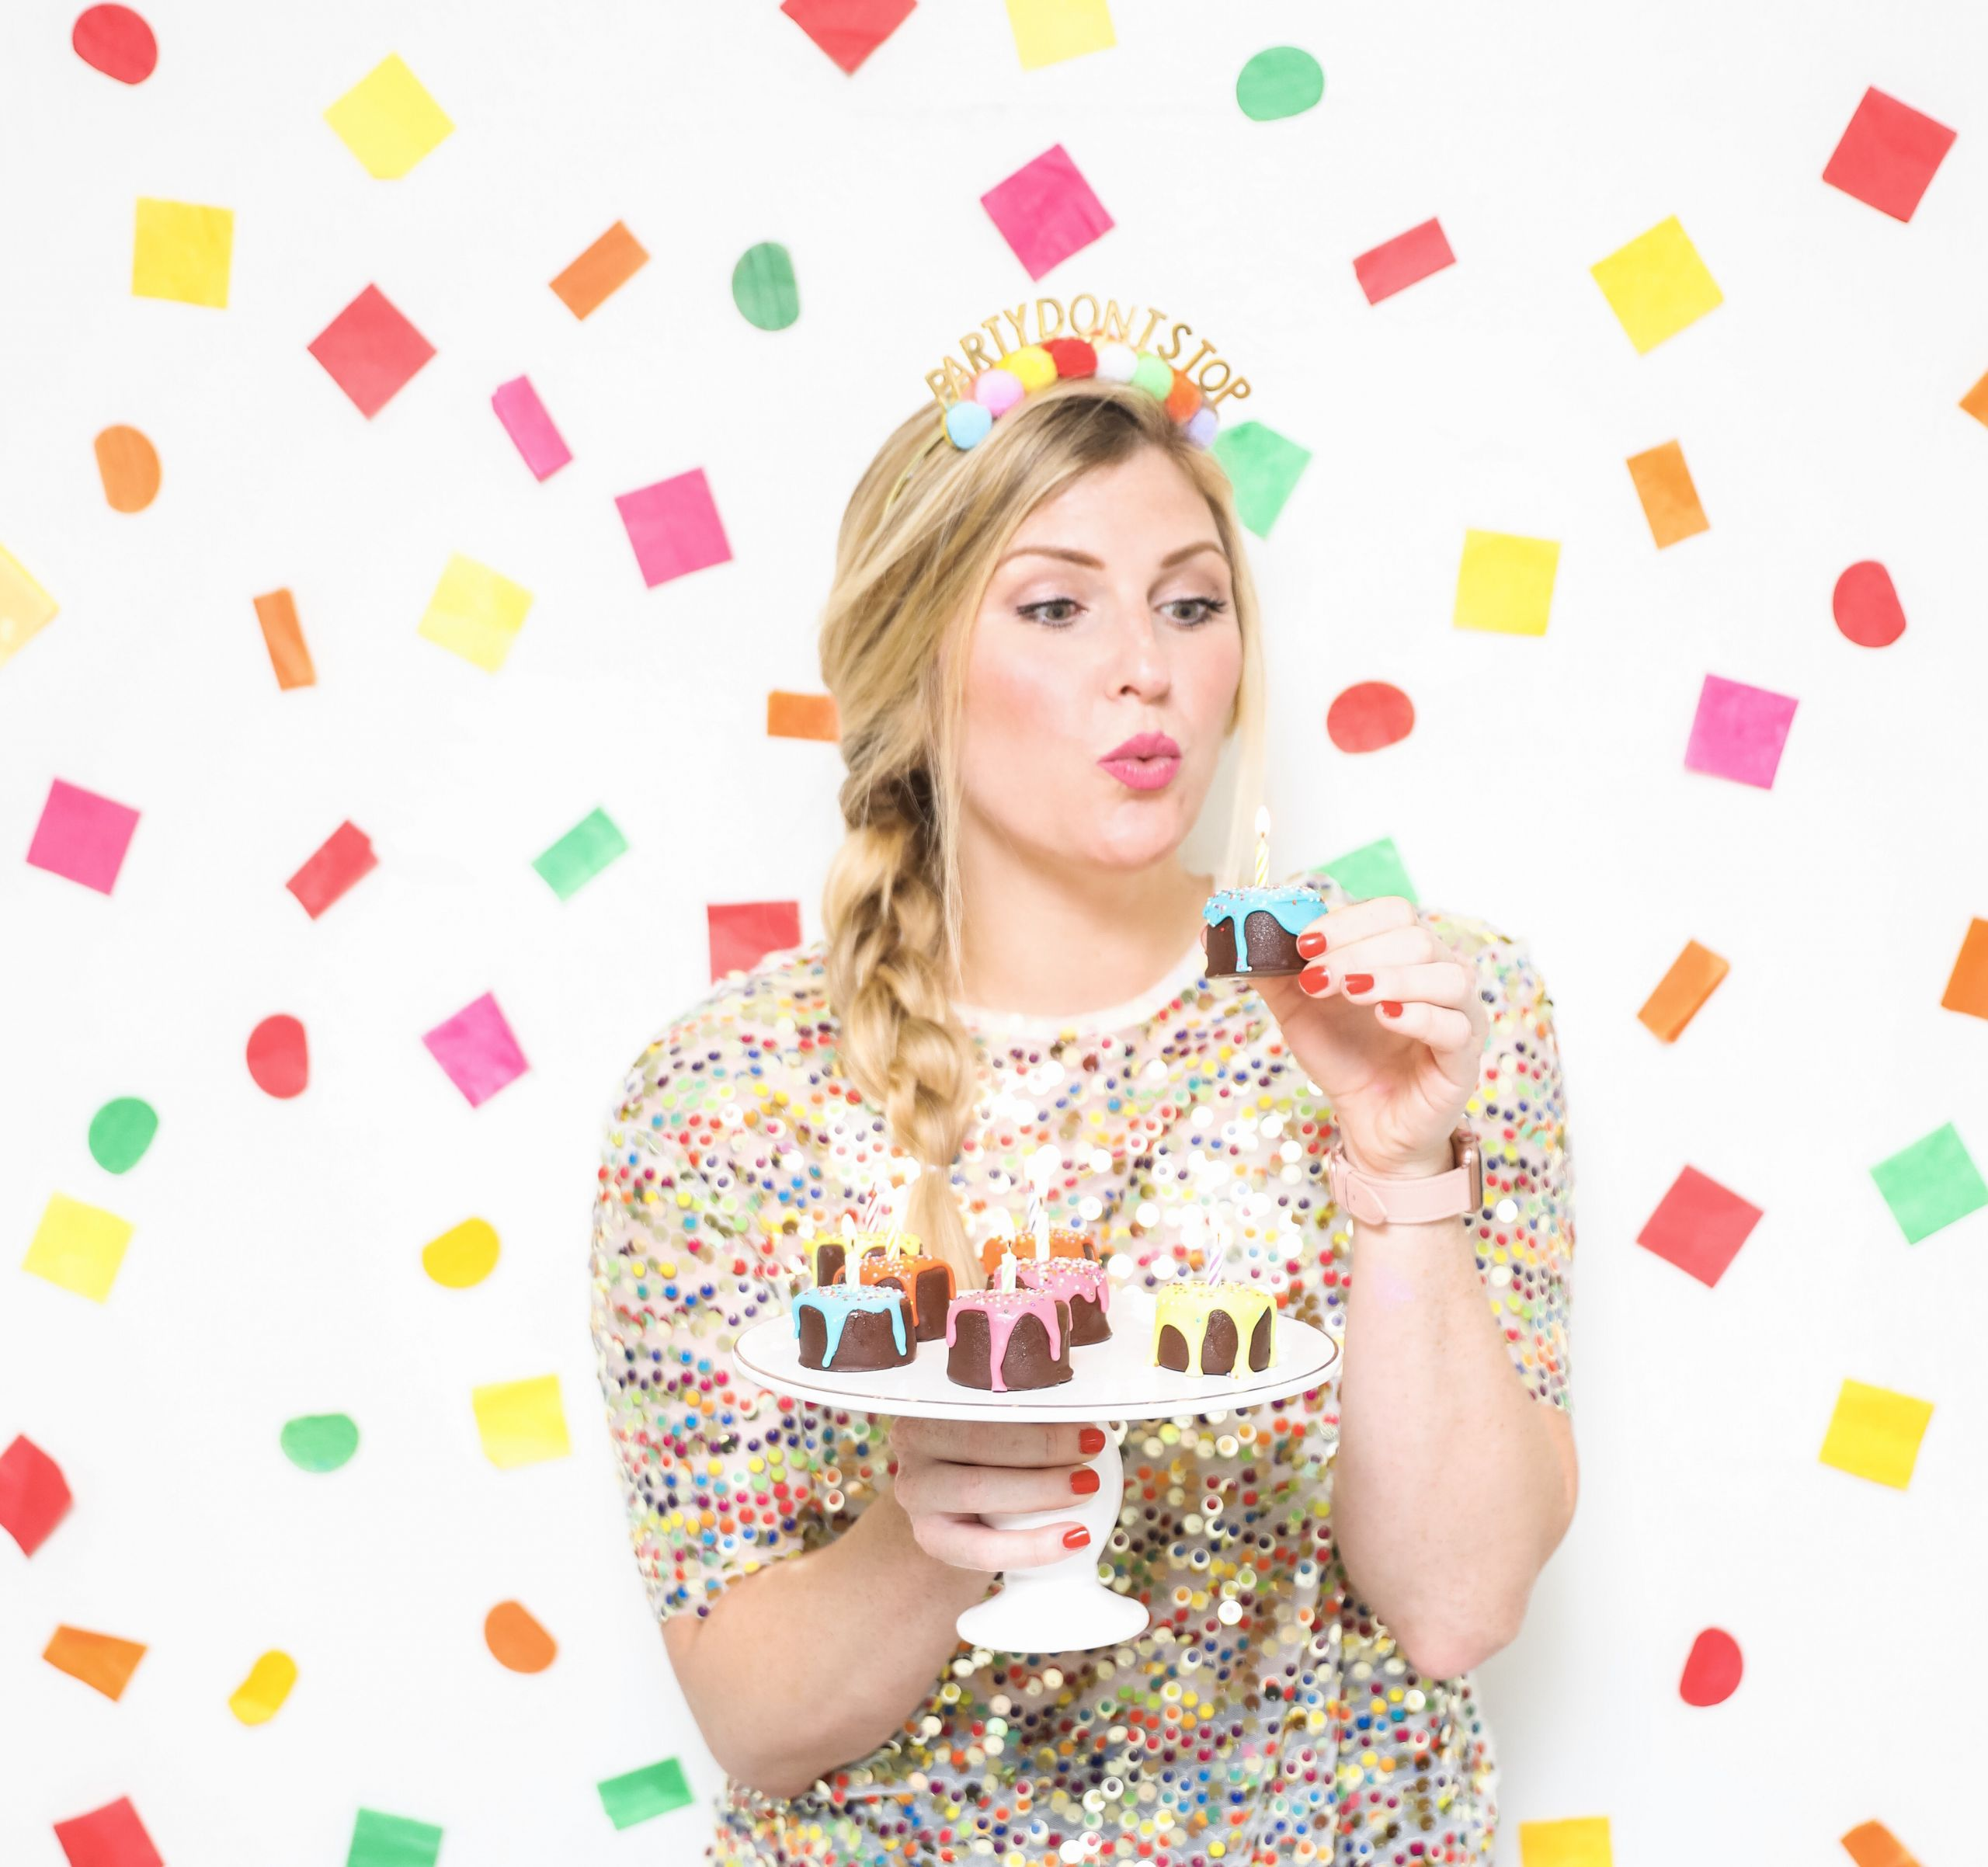 Top Birthday Gifts For Her  50 Great Birthday Gift Ideas for Her Edible Blog